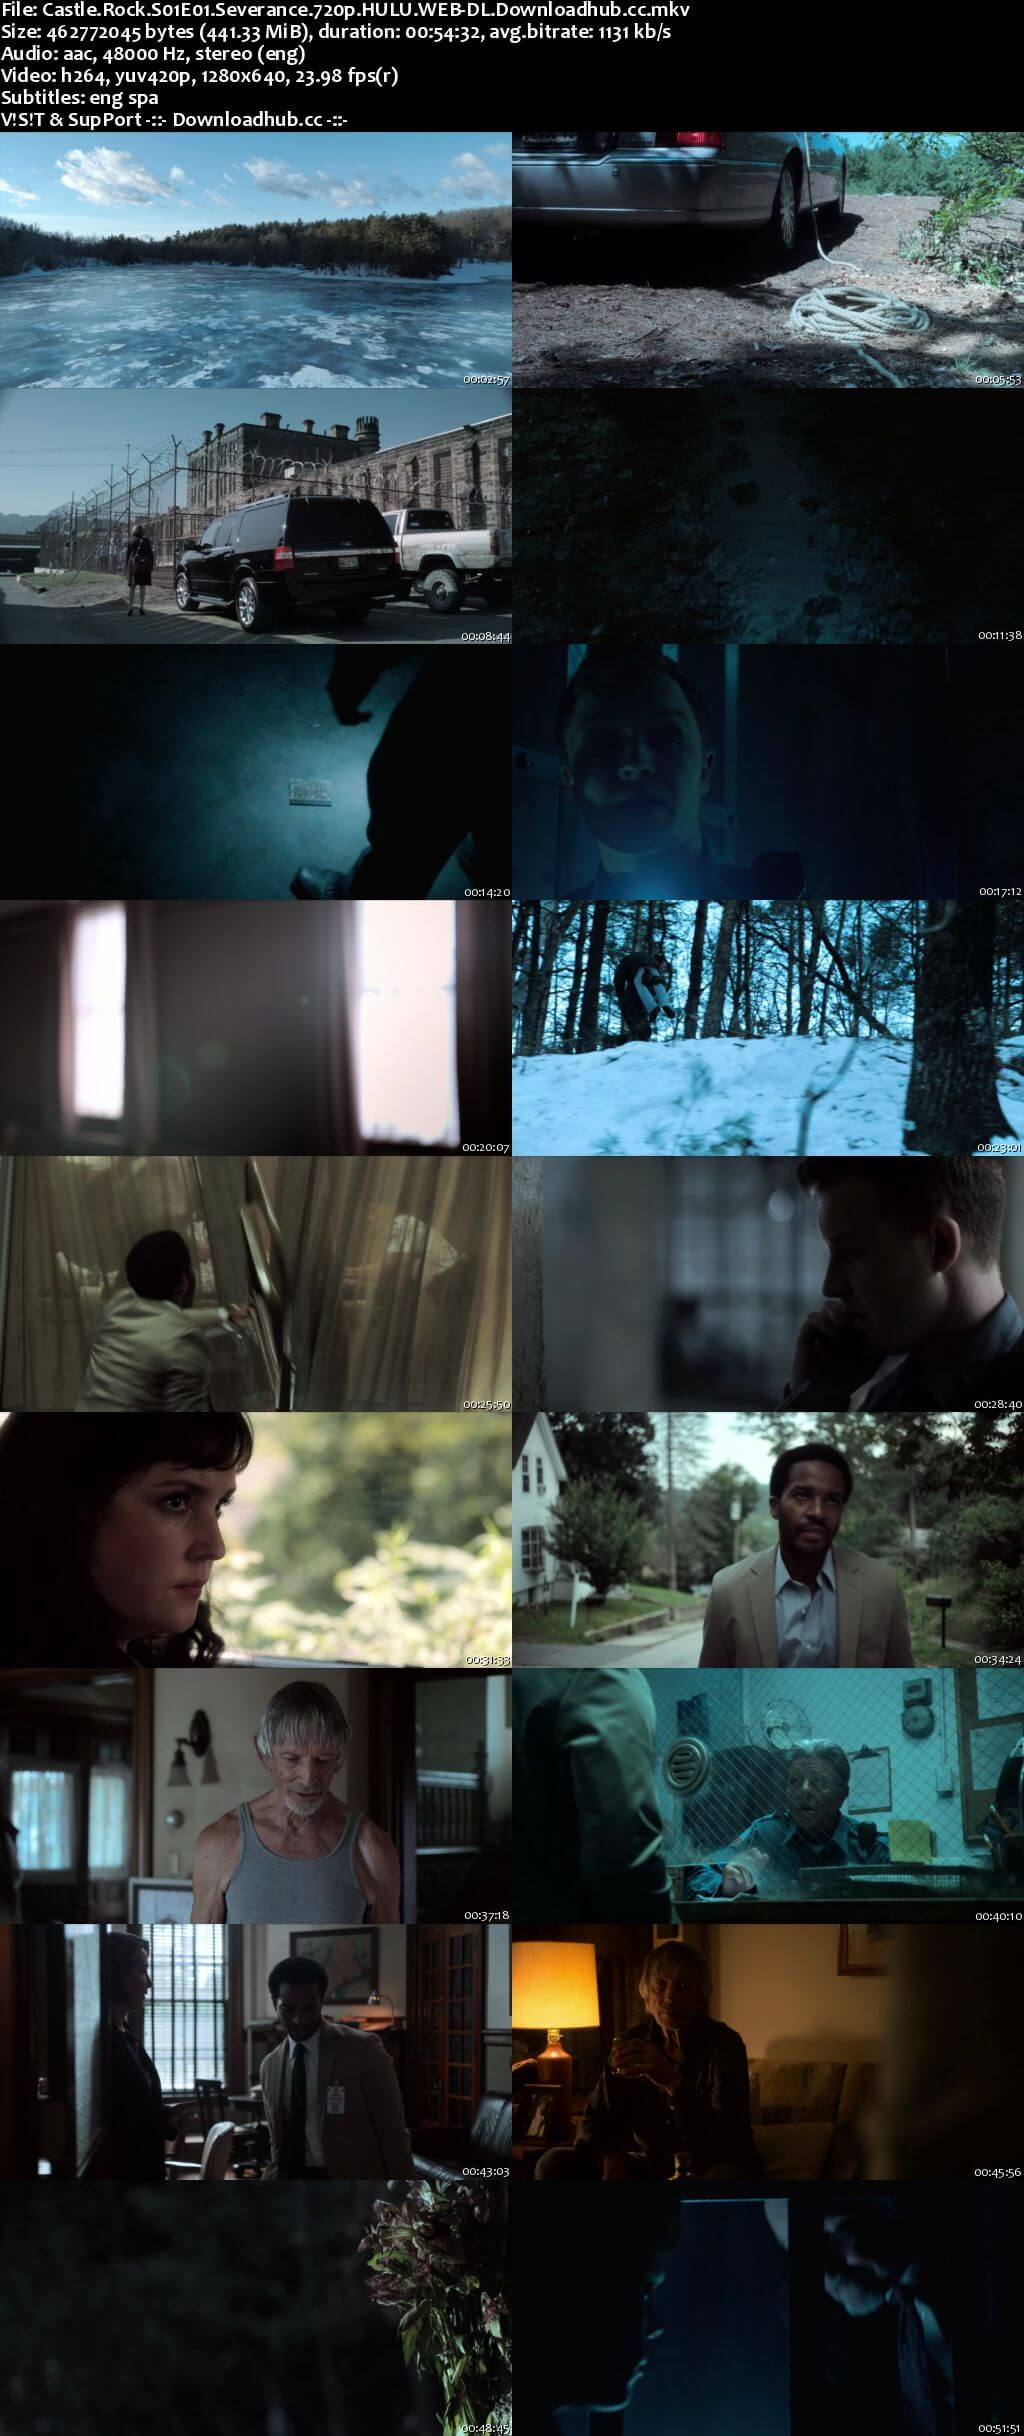 Castle Rock S01E01 440MB WEB-DL 720p ESubs